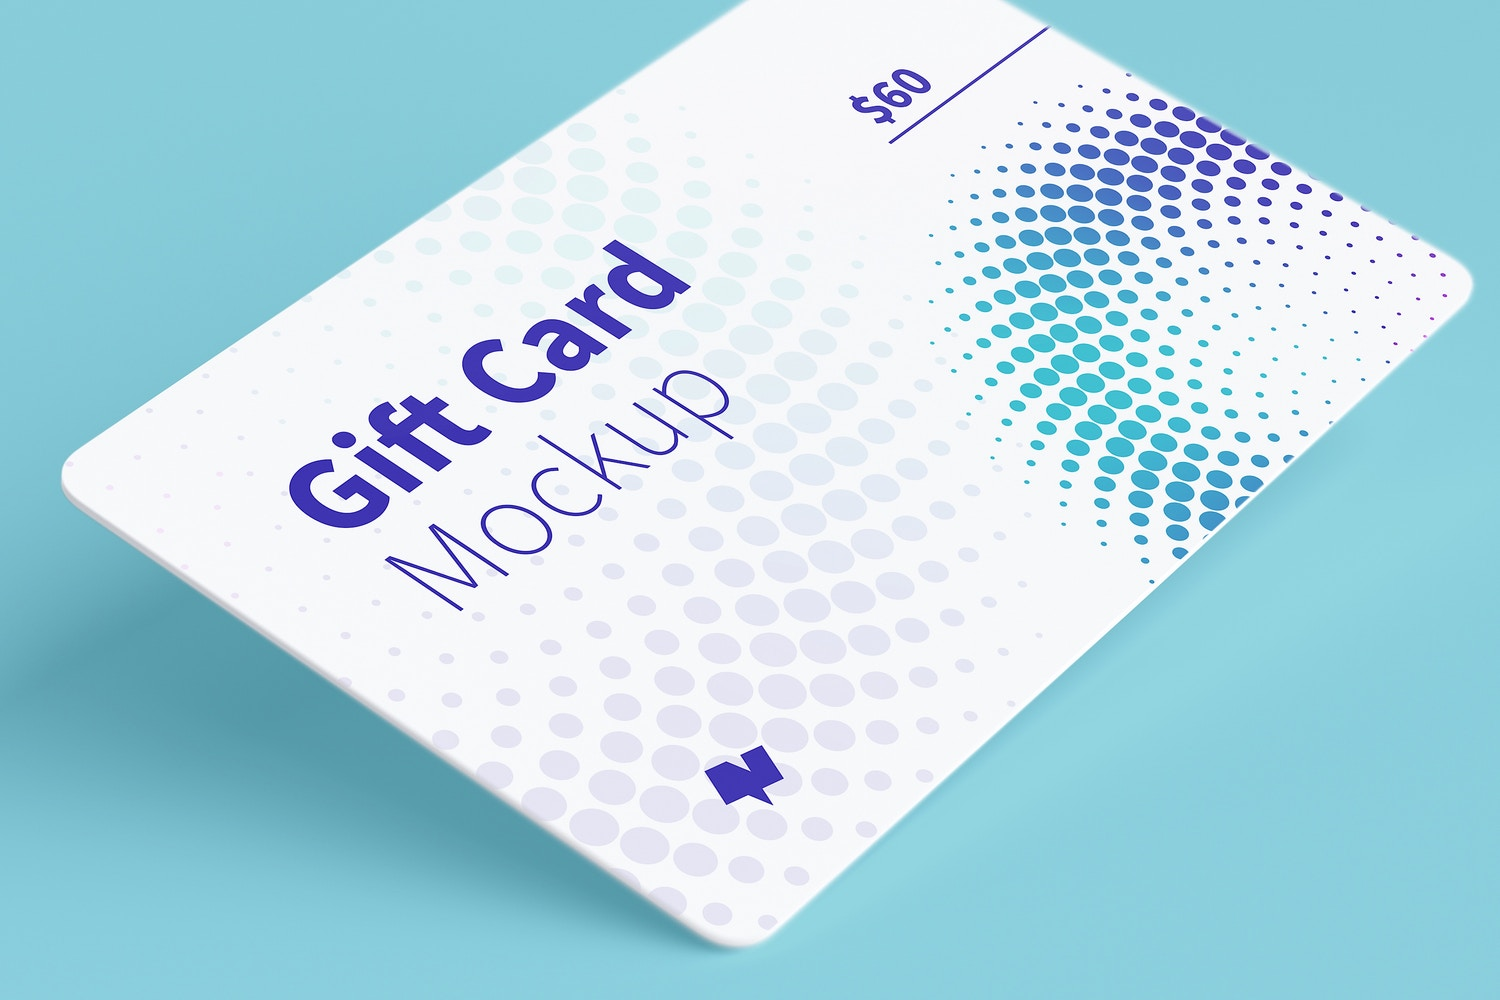 Gift Card Mockup 07 (4) by Original Mockups on Original Mockups